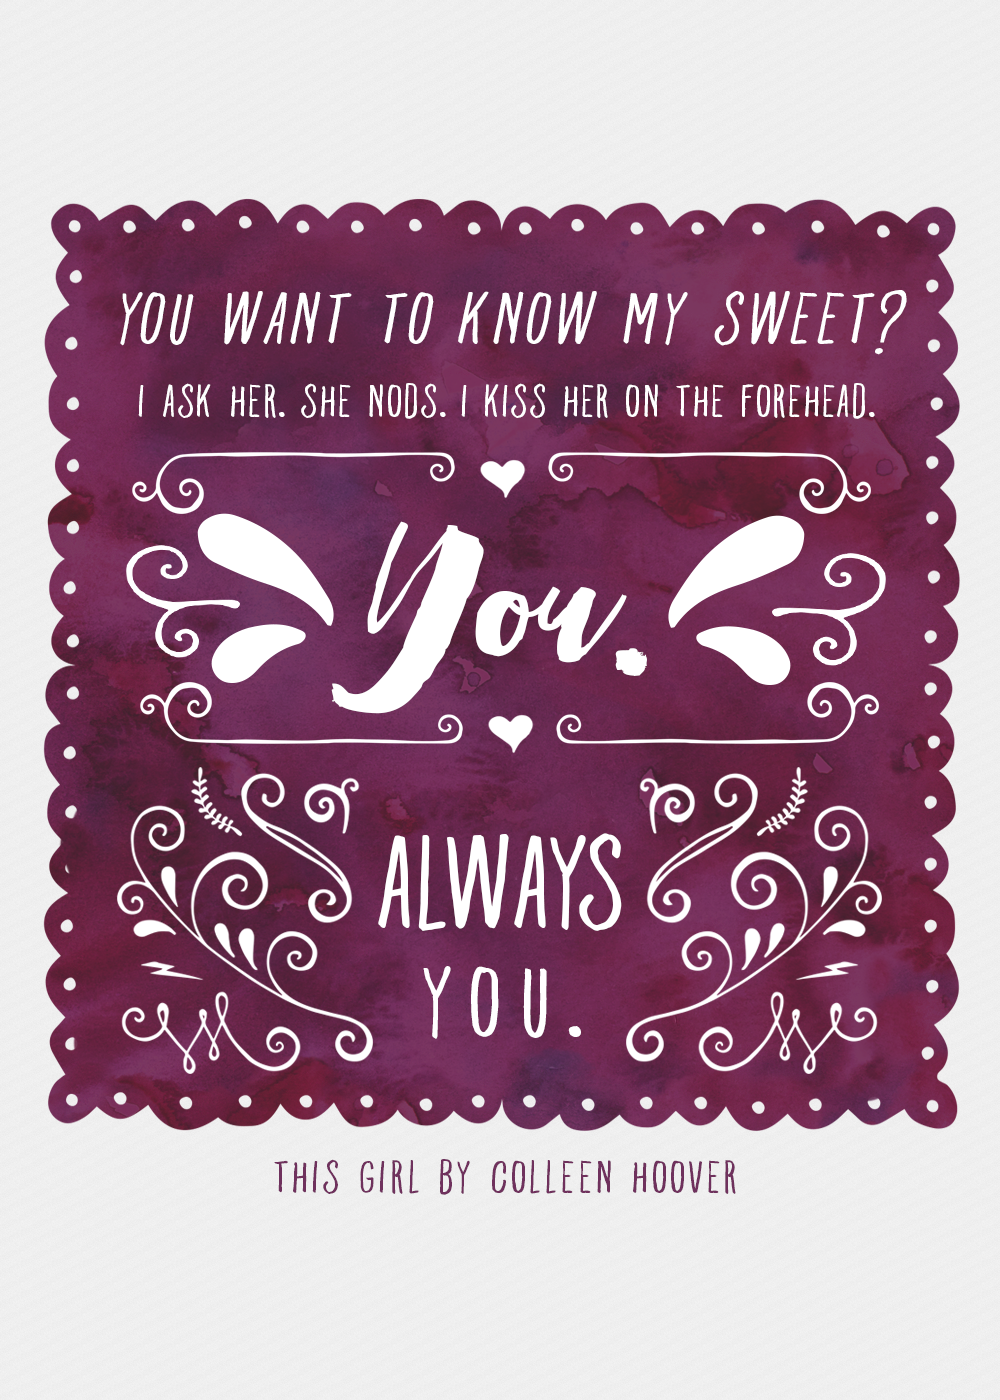 this girl by colleen hoover quote - my sweet